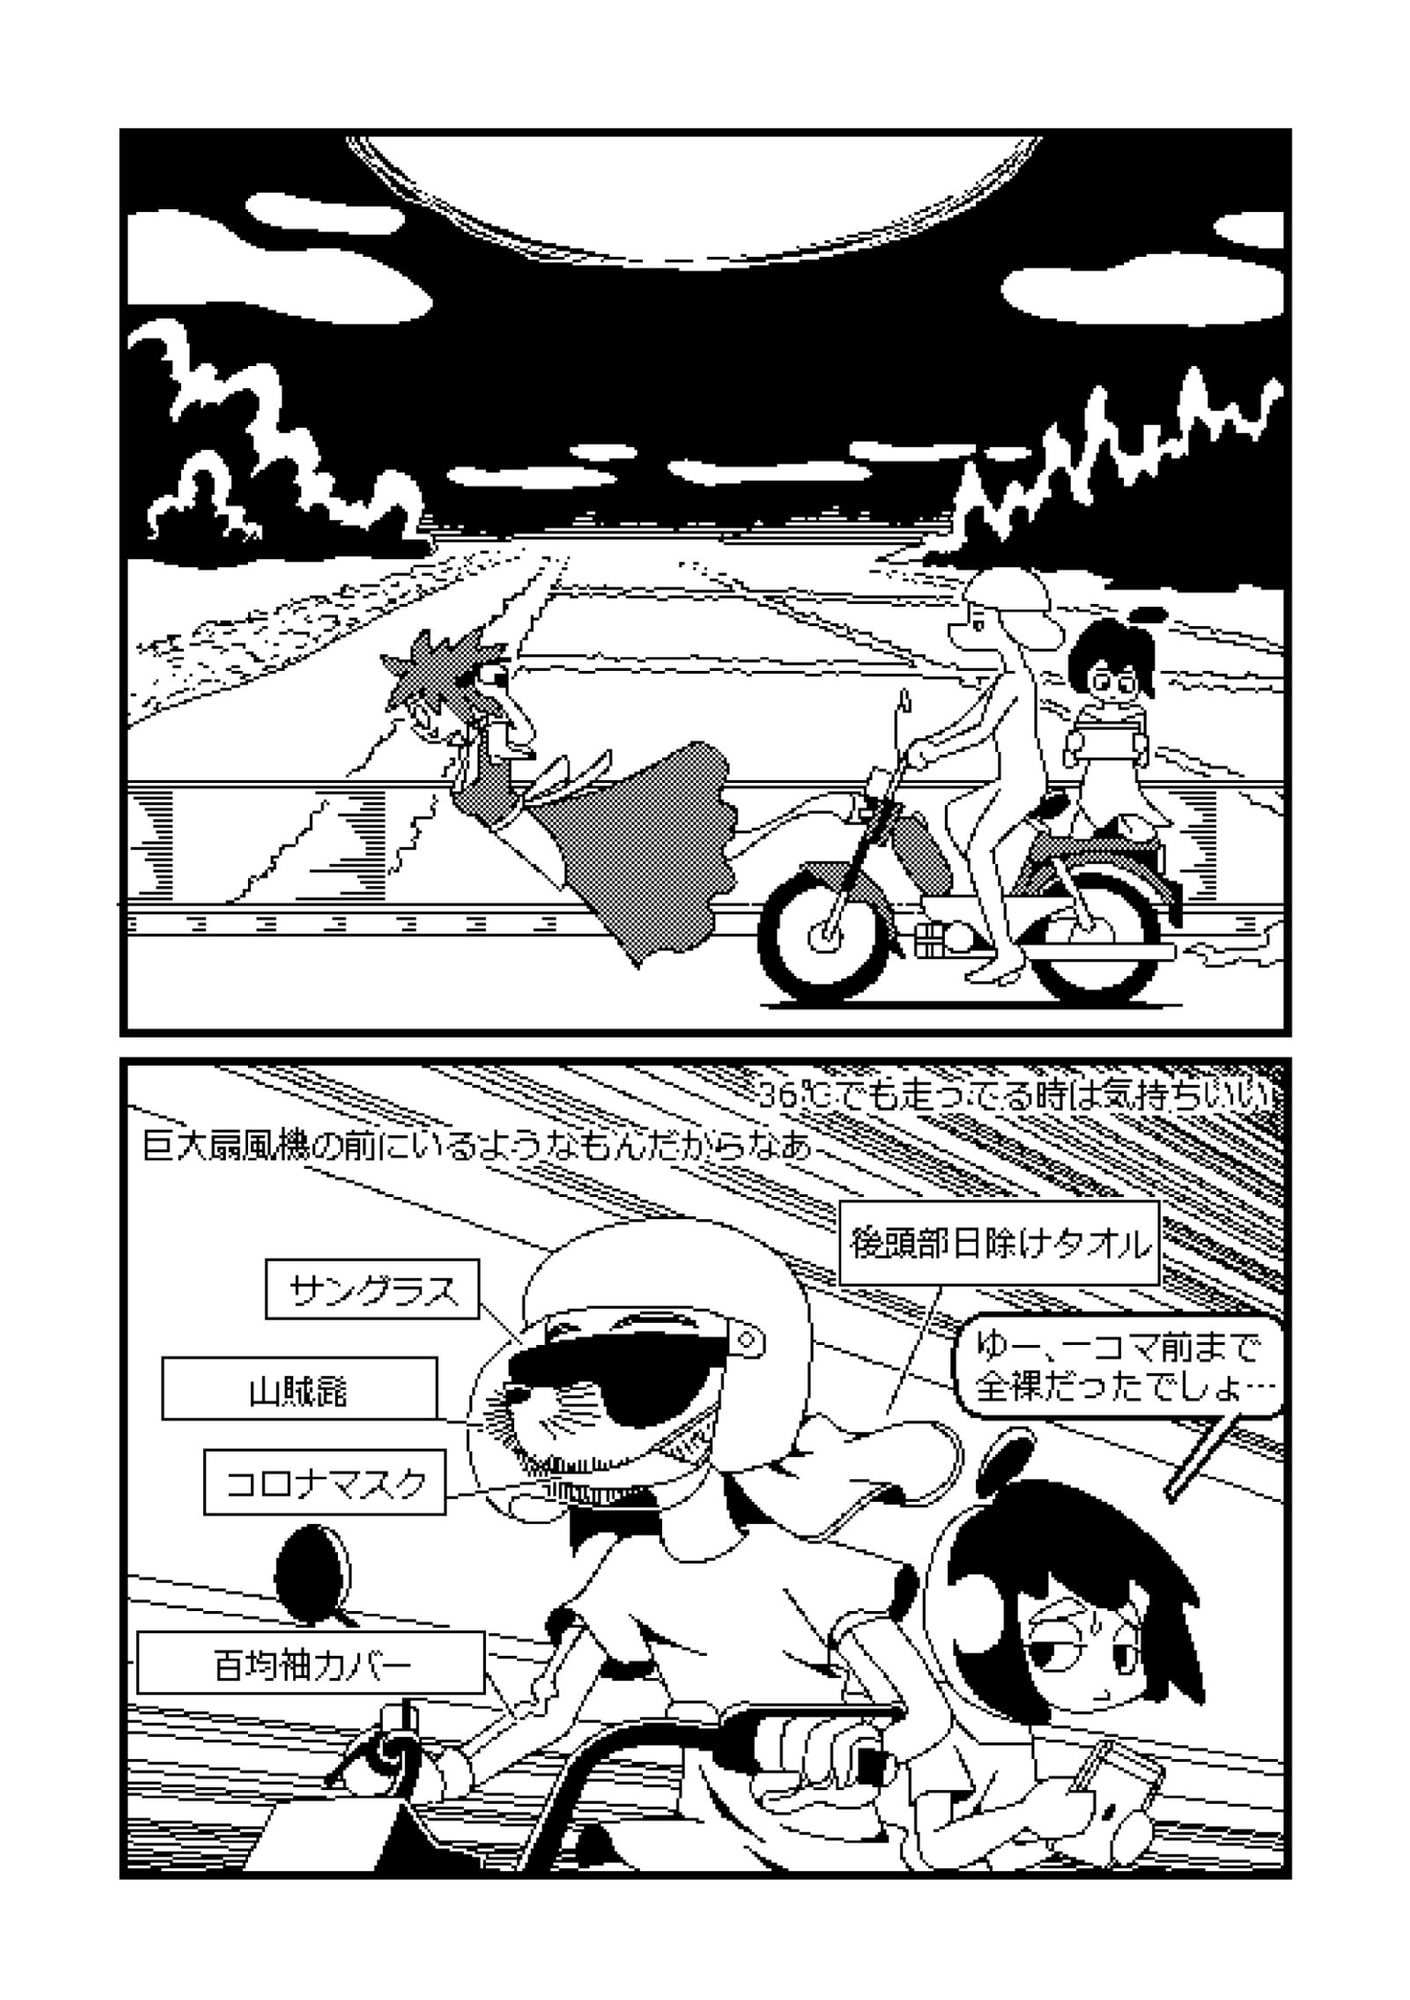 [Jp/En]ピクセルデイズ4: The day of hot as hell